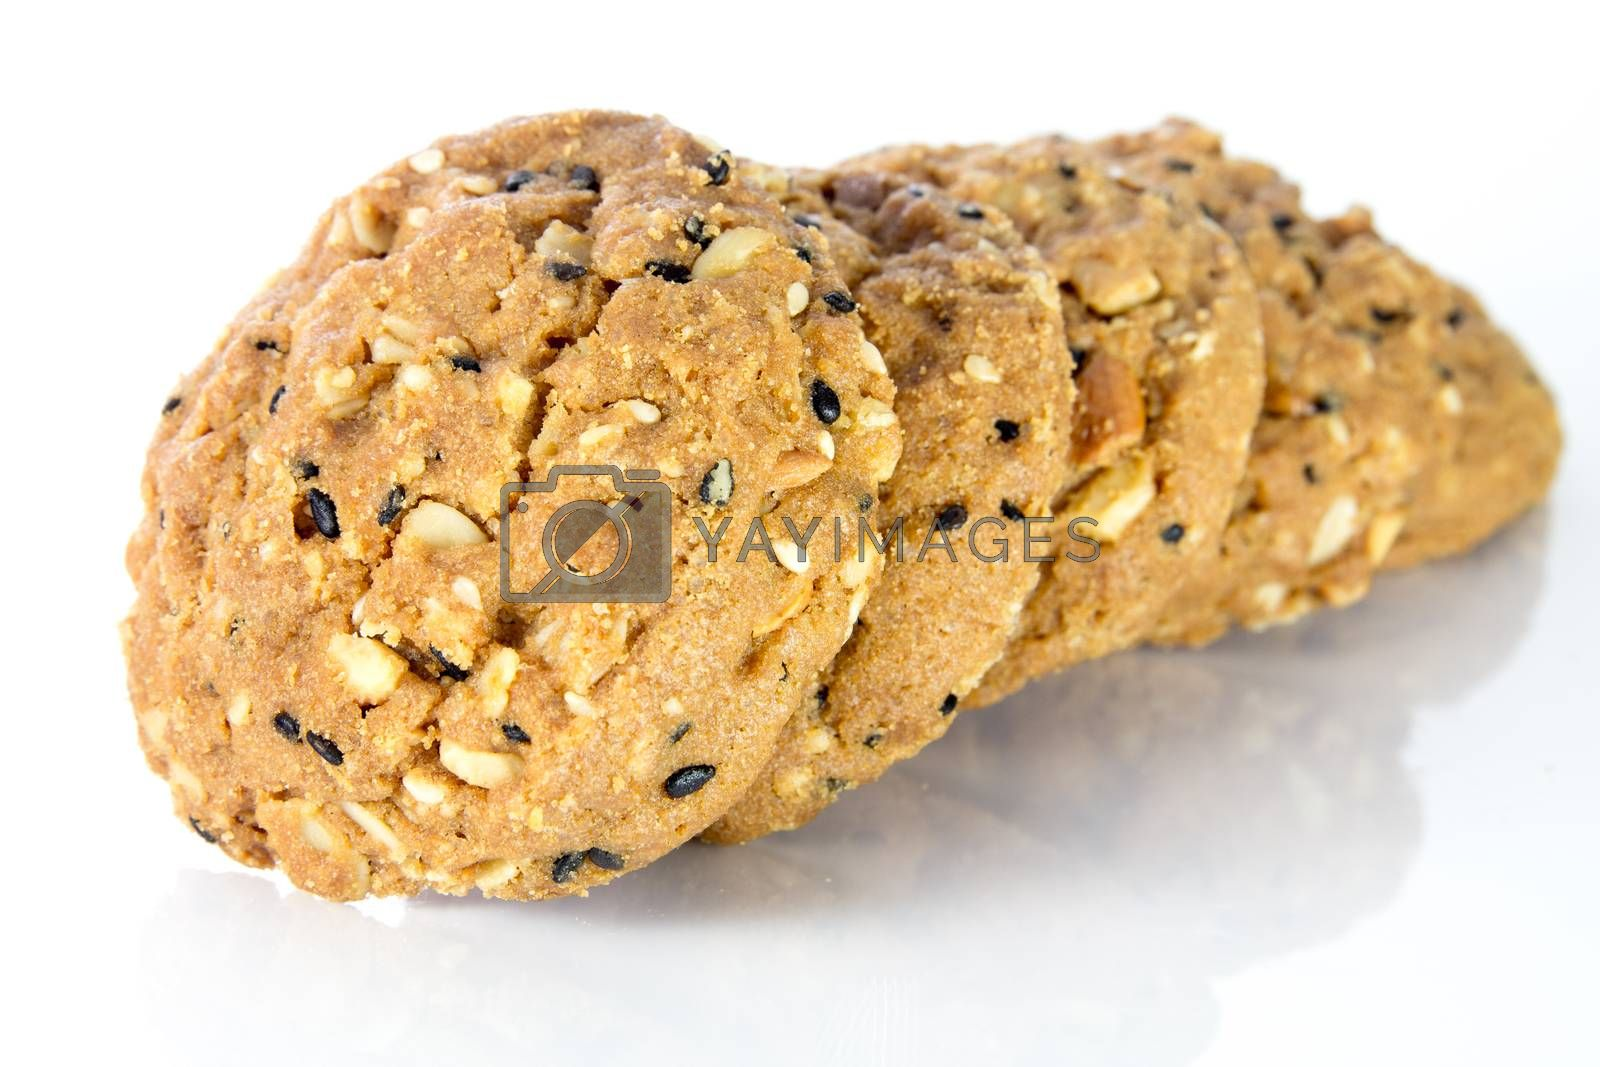 Royalty free image of whole grain cookies by theerapoll